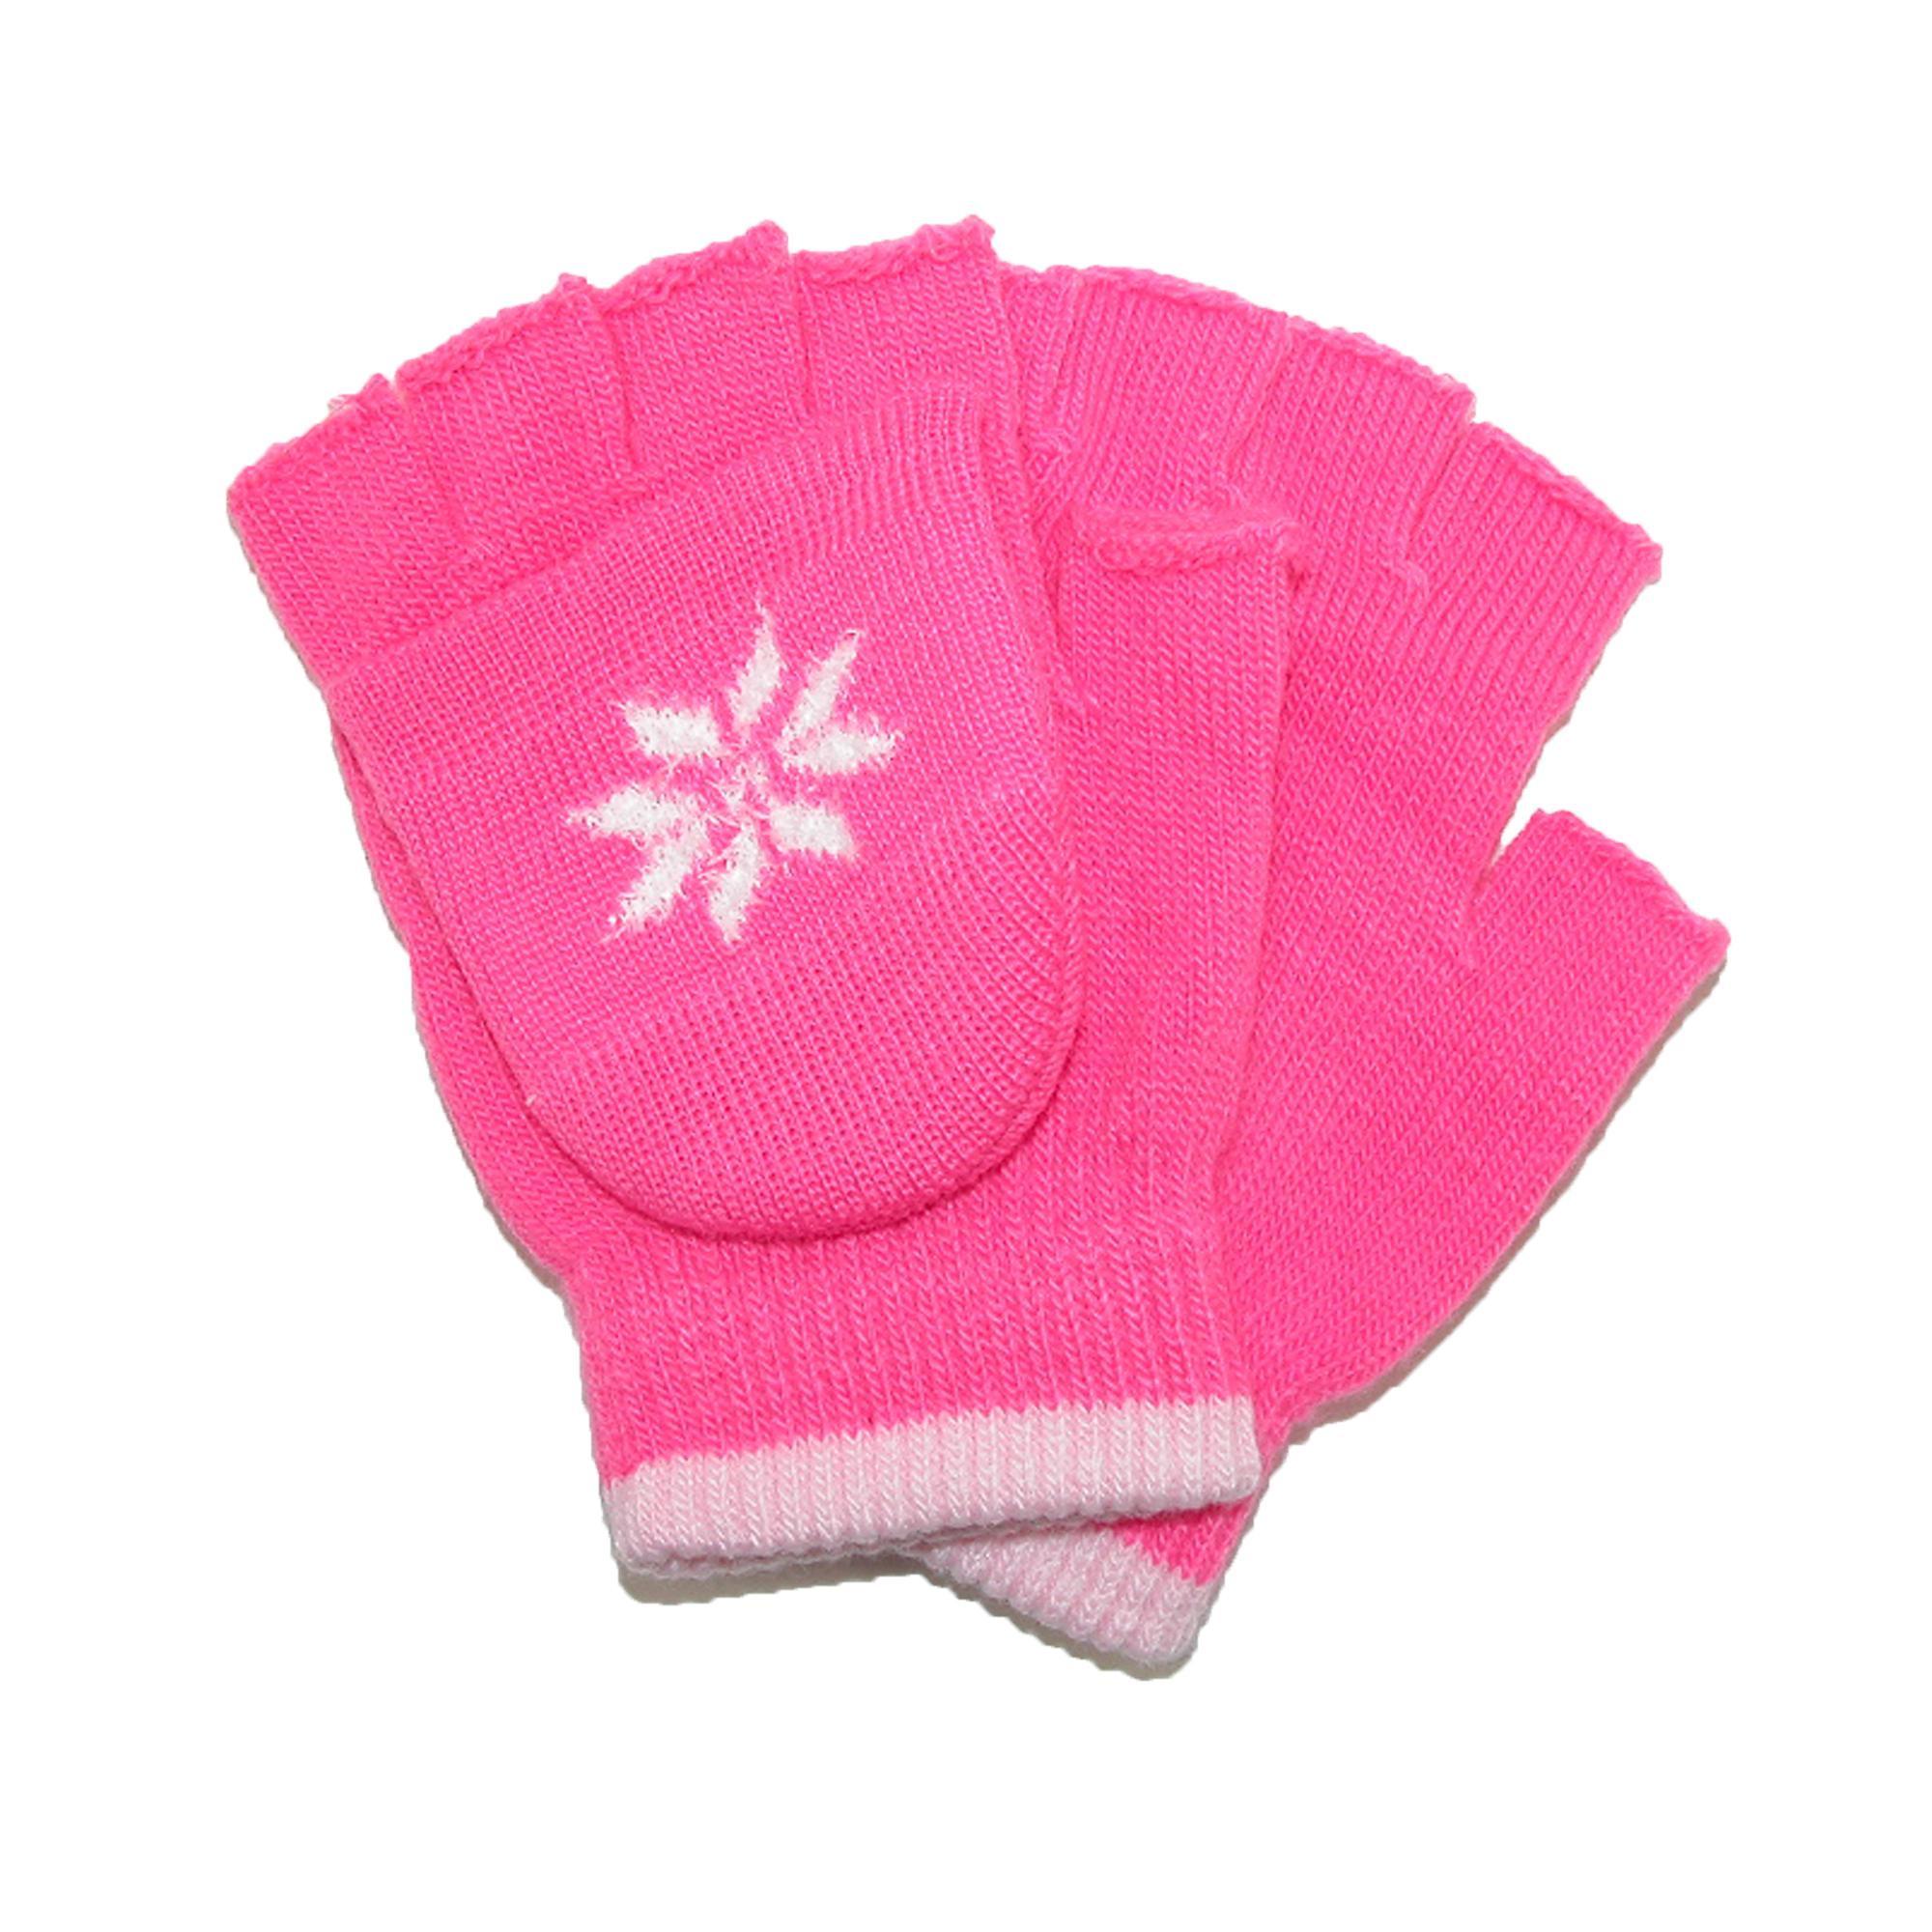 CTM_Girls_Stretch_Convertible_Fingerless_Winter_Mittens__Gloves_